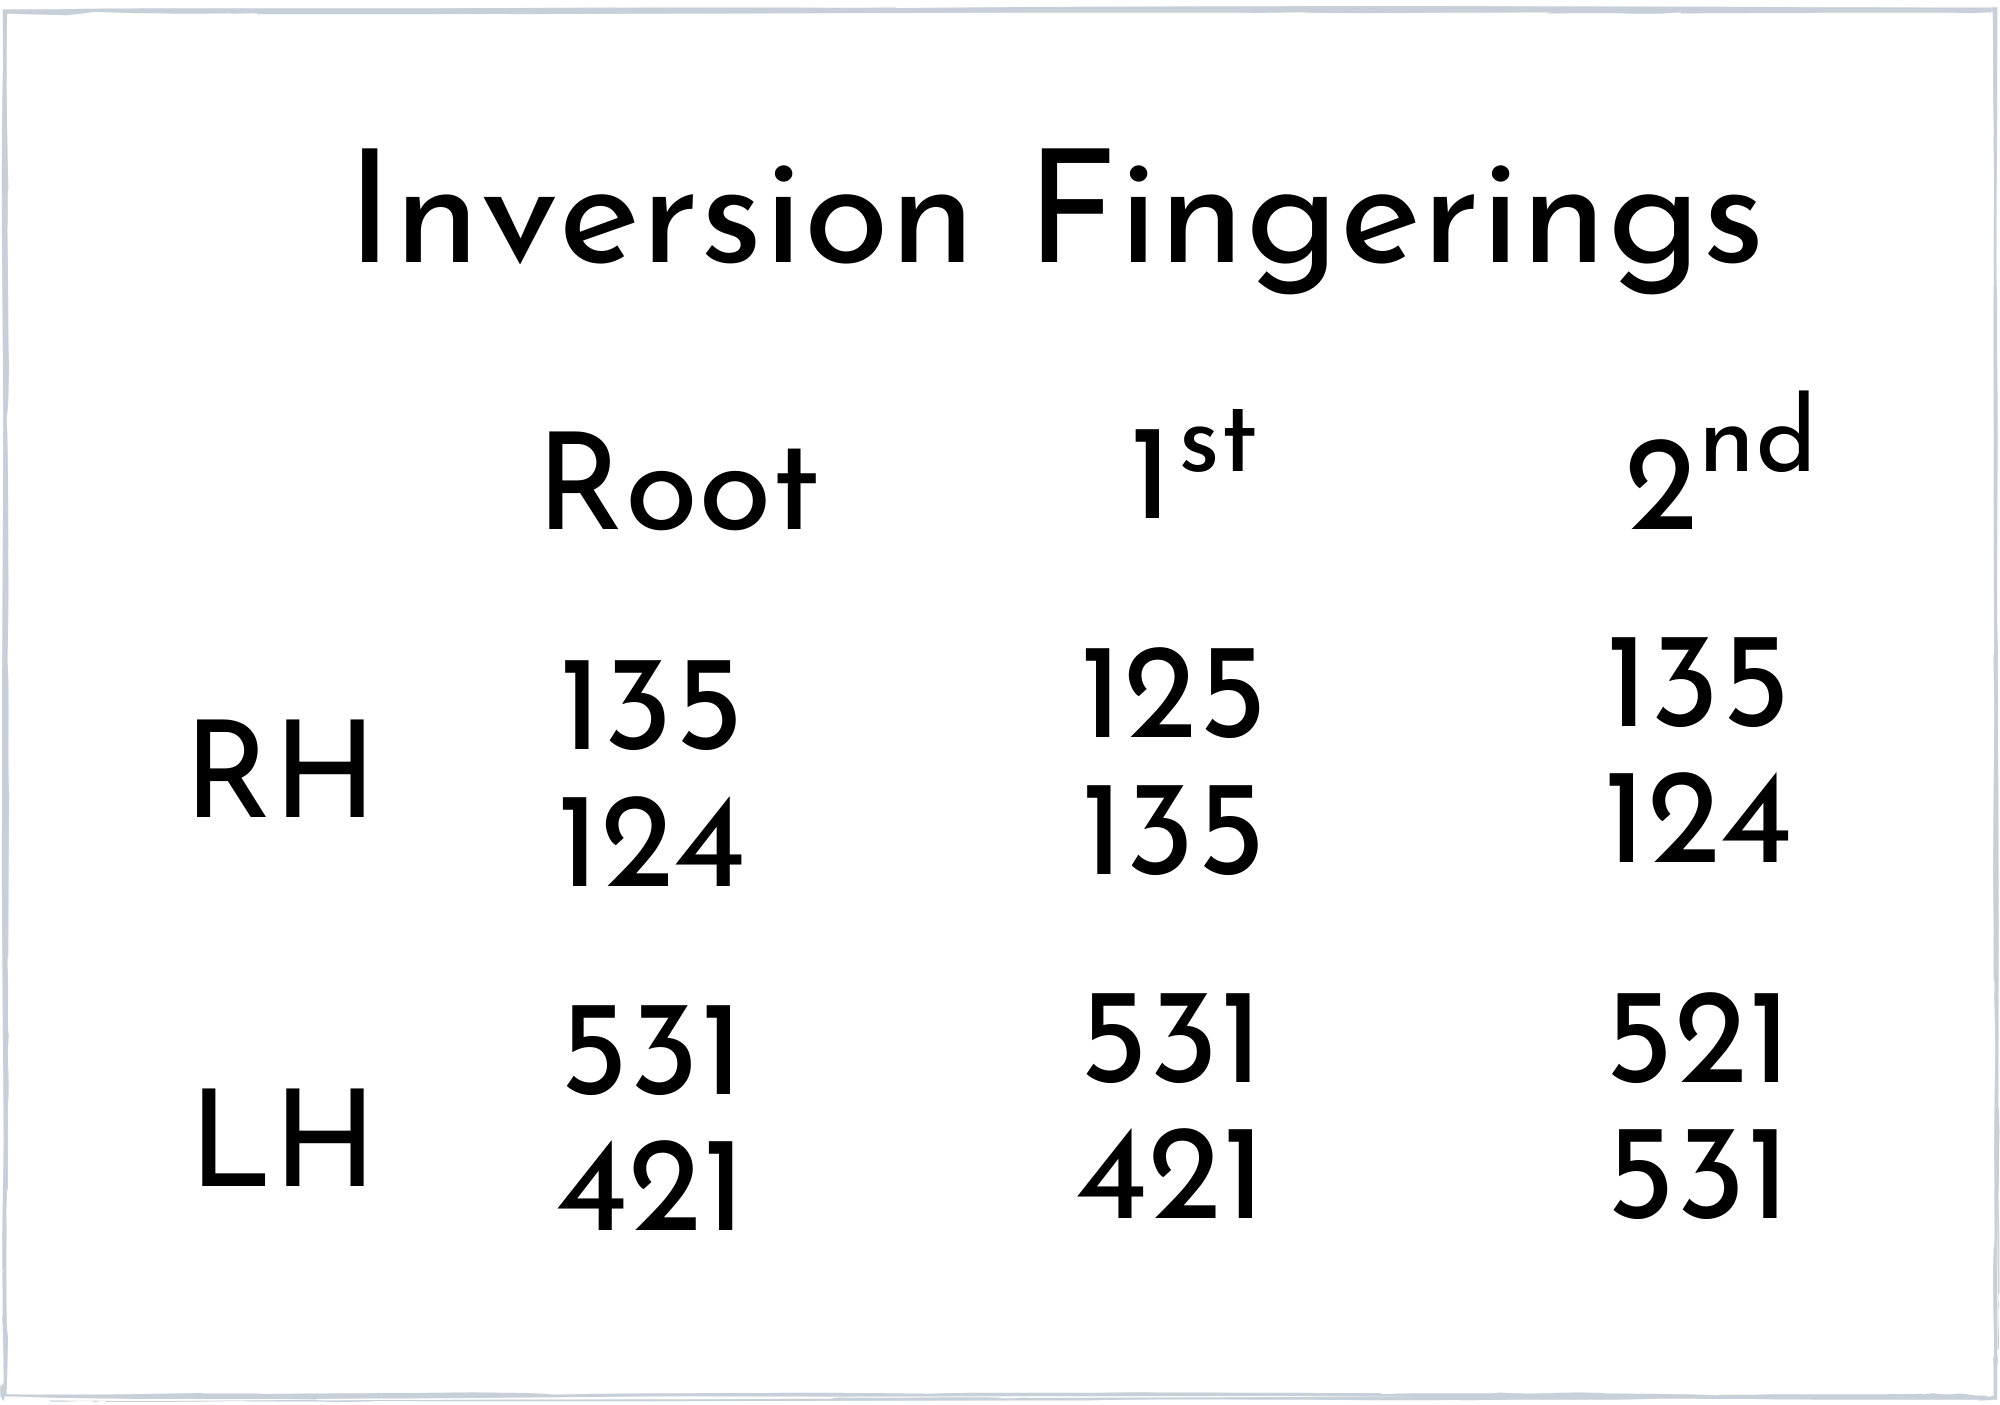 Common fingerings for inversions for root 2nd and 1st inversion